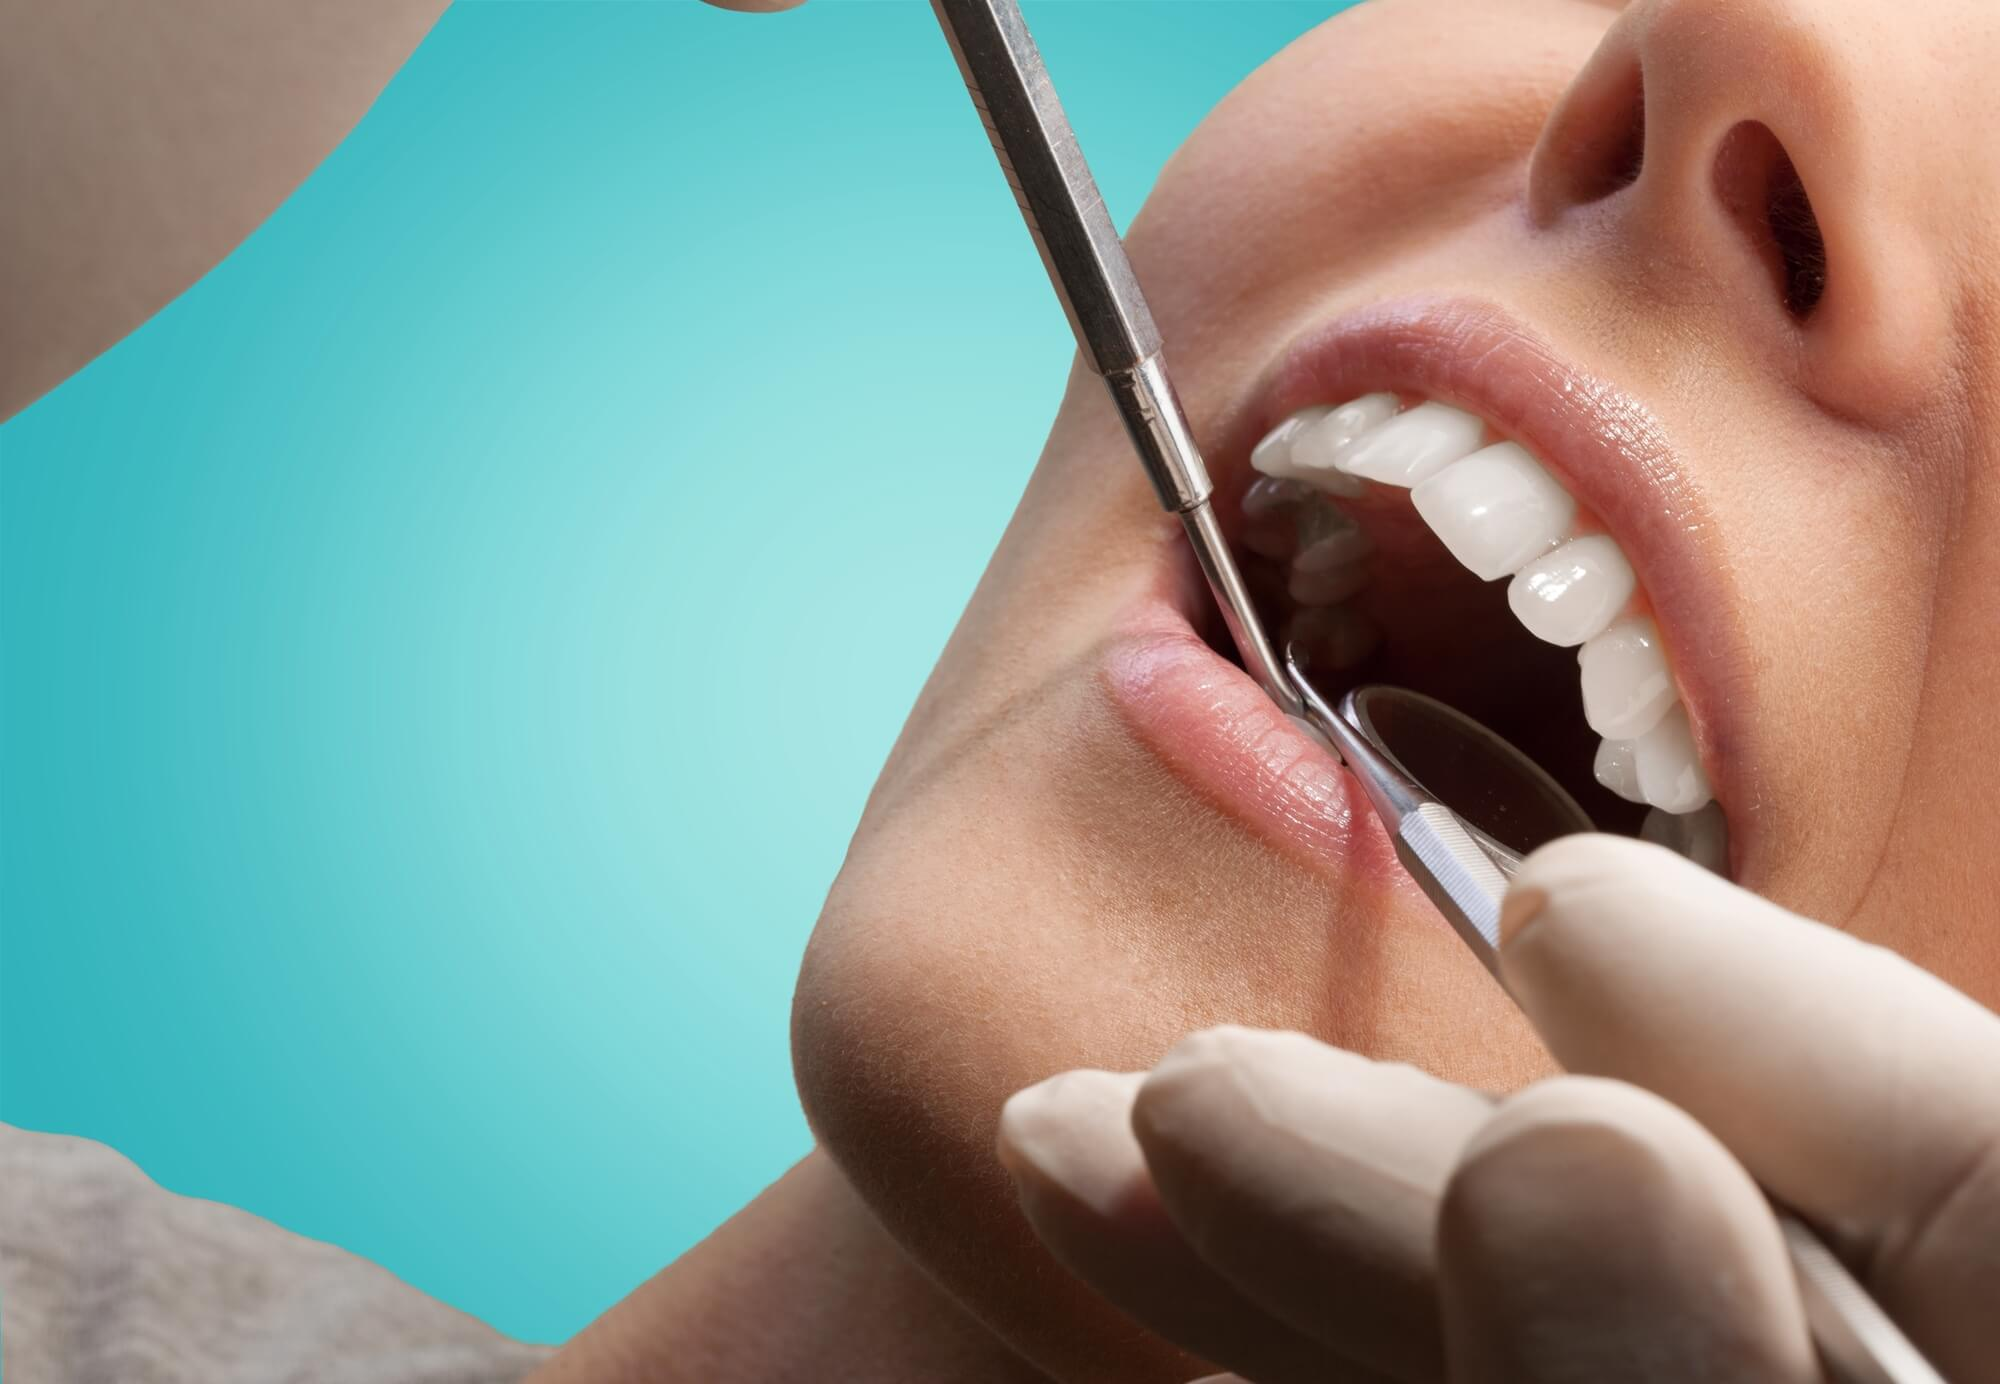 who offers dental implants in west palm beach?